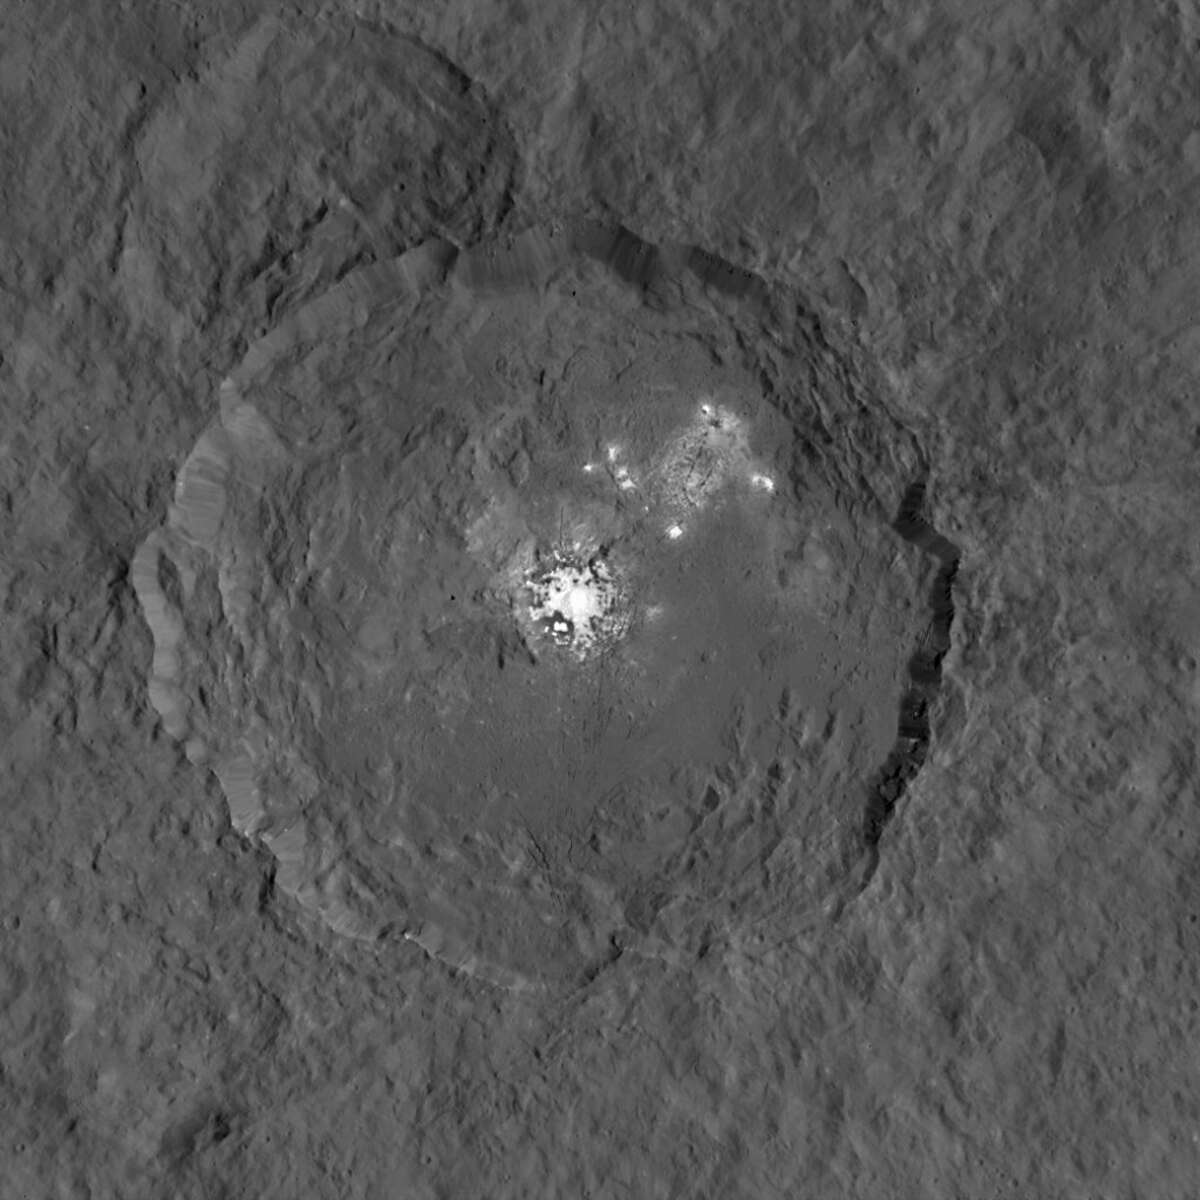 NASA caption: This image, made using images taken by NASA's Dawn spacecraft, shows Occator crater on Ceres, home to a collection of intriguing bright spots. The bright spots are much brighter than the rest of Ceres' surface, and tend to appear overexposed in most images. This view is a composite of two images of Occator: one using a short exposure that captures the detail in the bright spots, and one where the background surface is captured at normal exposure. Image credit: NASA/JPL-Caltech/UCLA/MPS/DLR/IDA